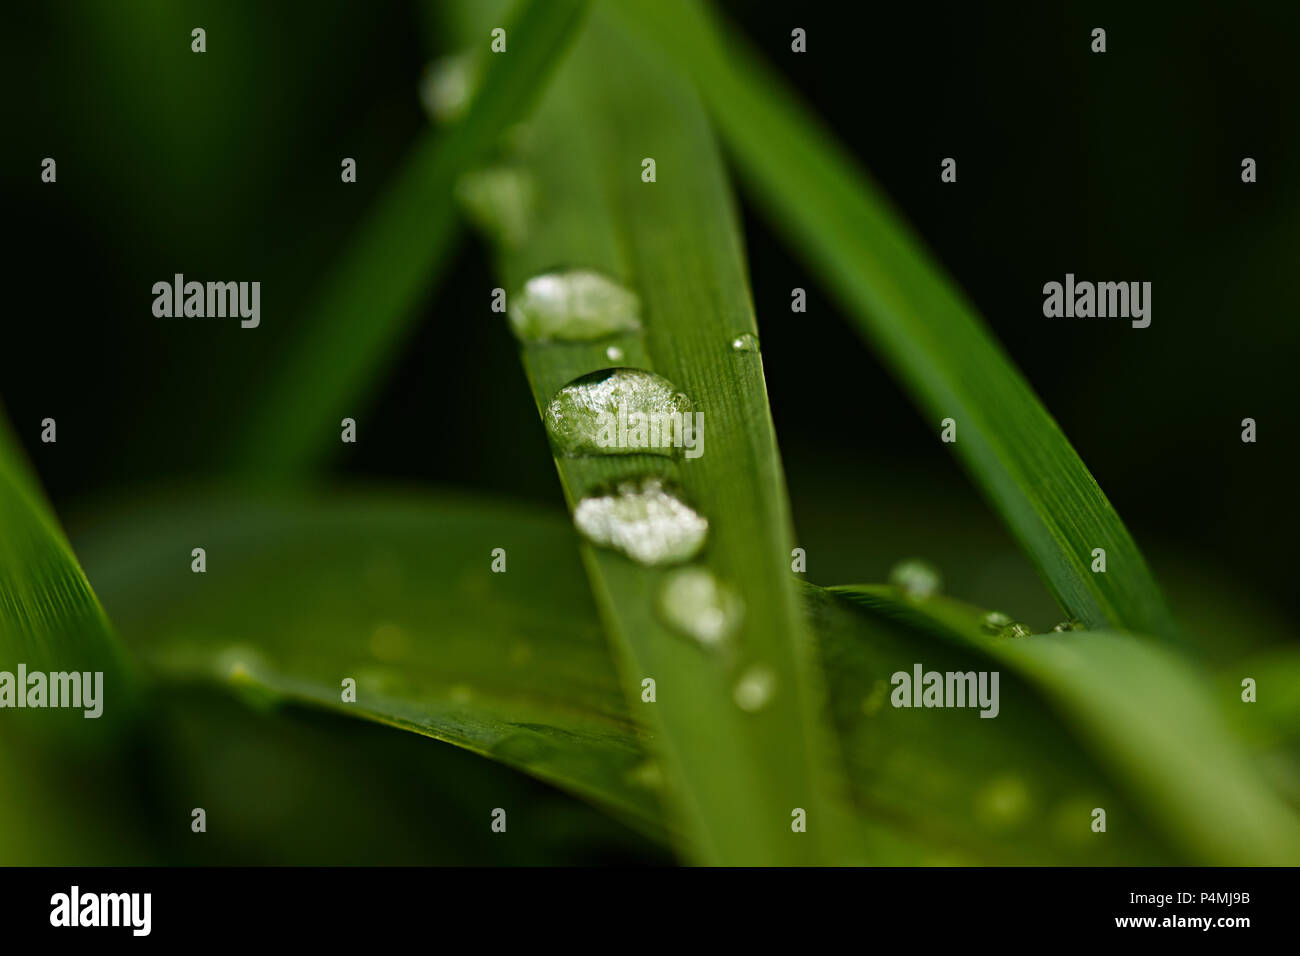 Water drops on the grass. After rain on the grass were drops. They reflect the world around them. Nature, macro, close-up. Russia, Moscow region - Stock Image